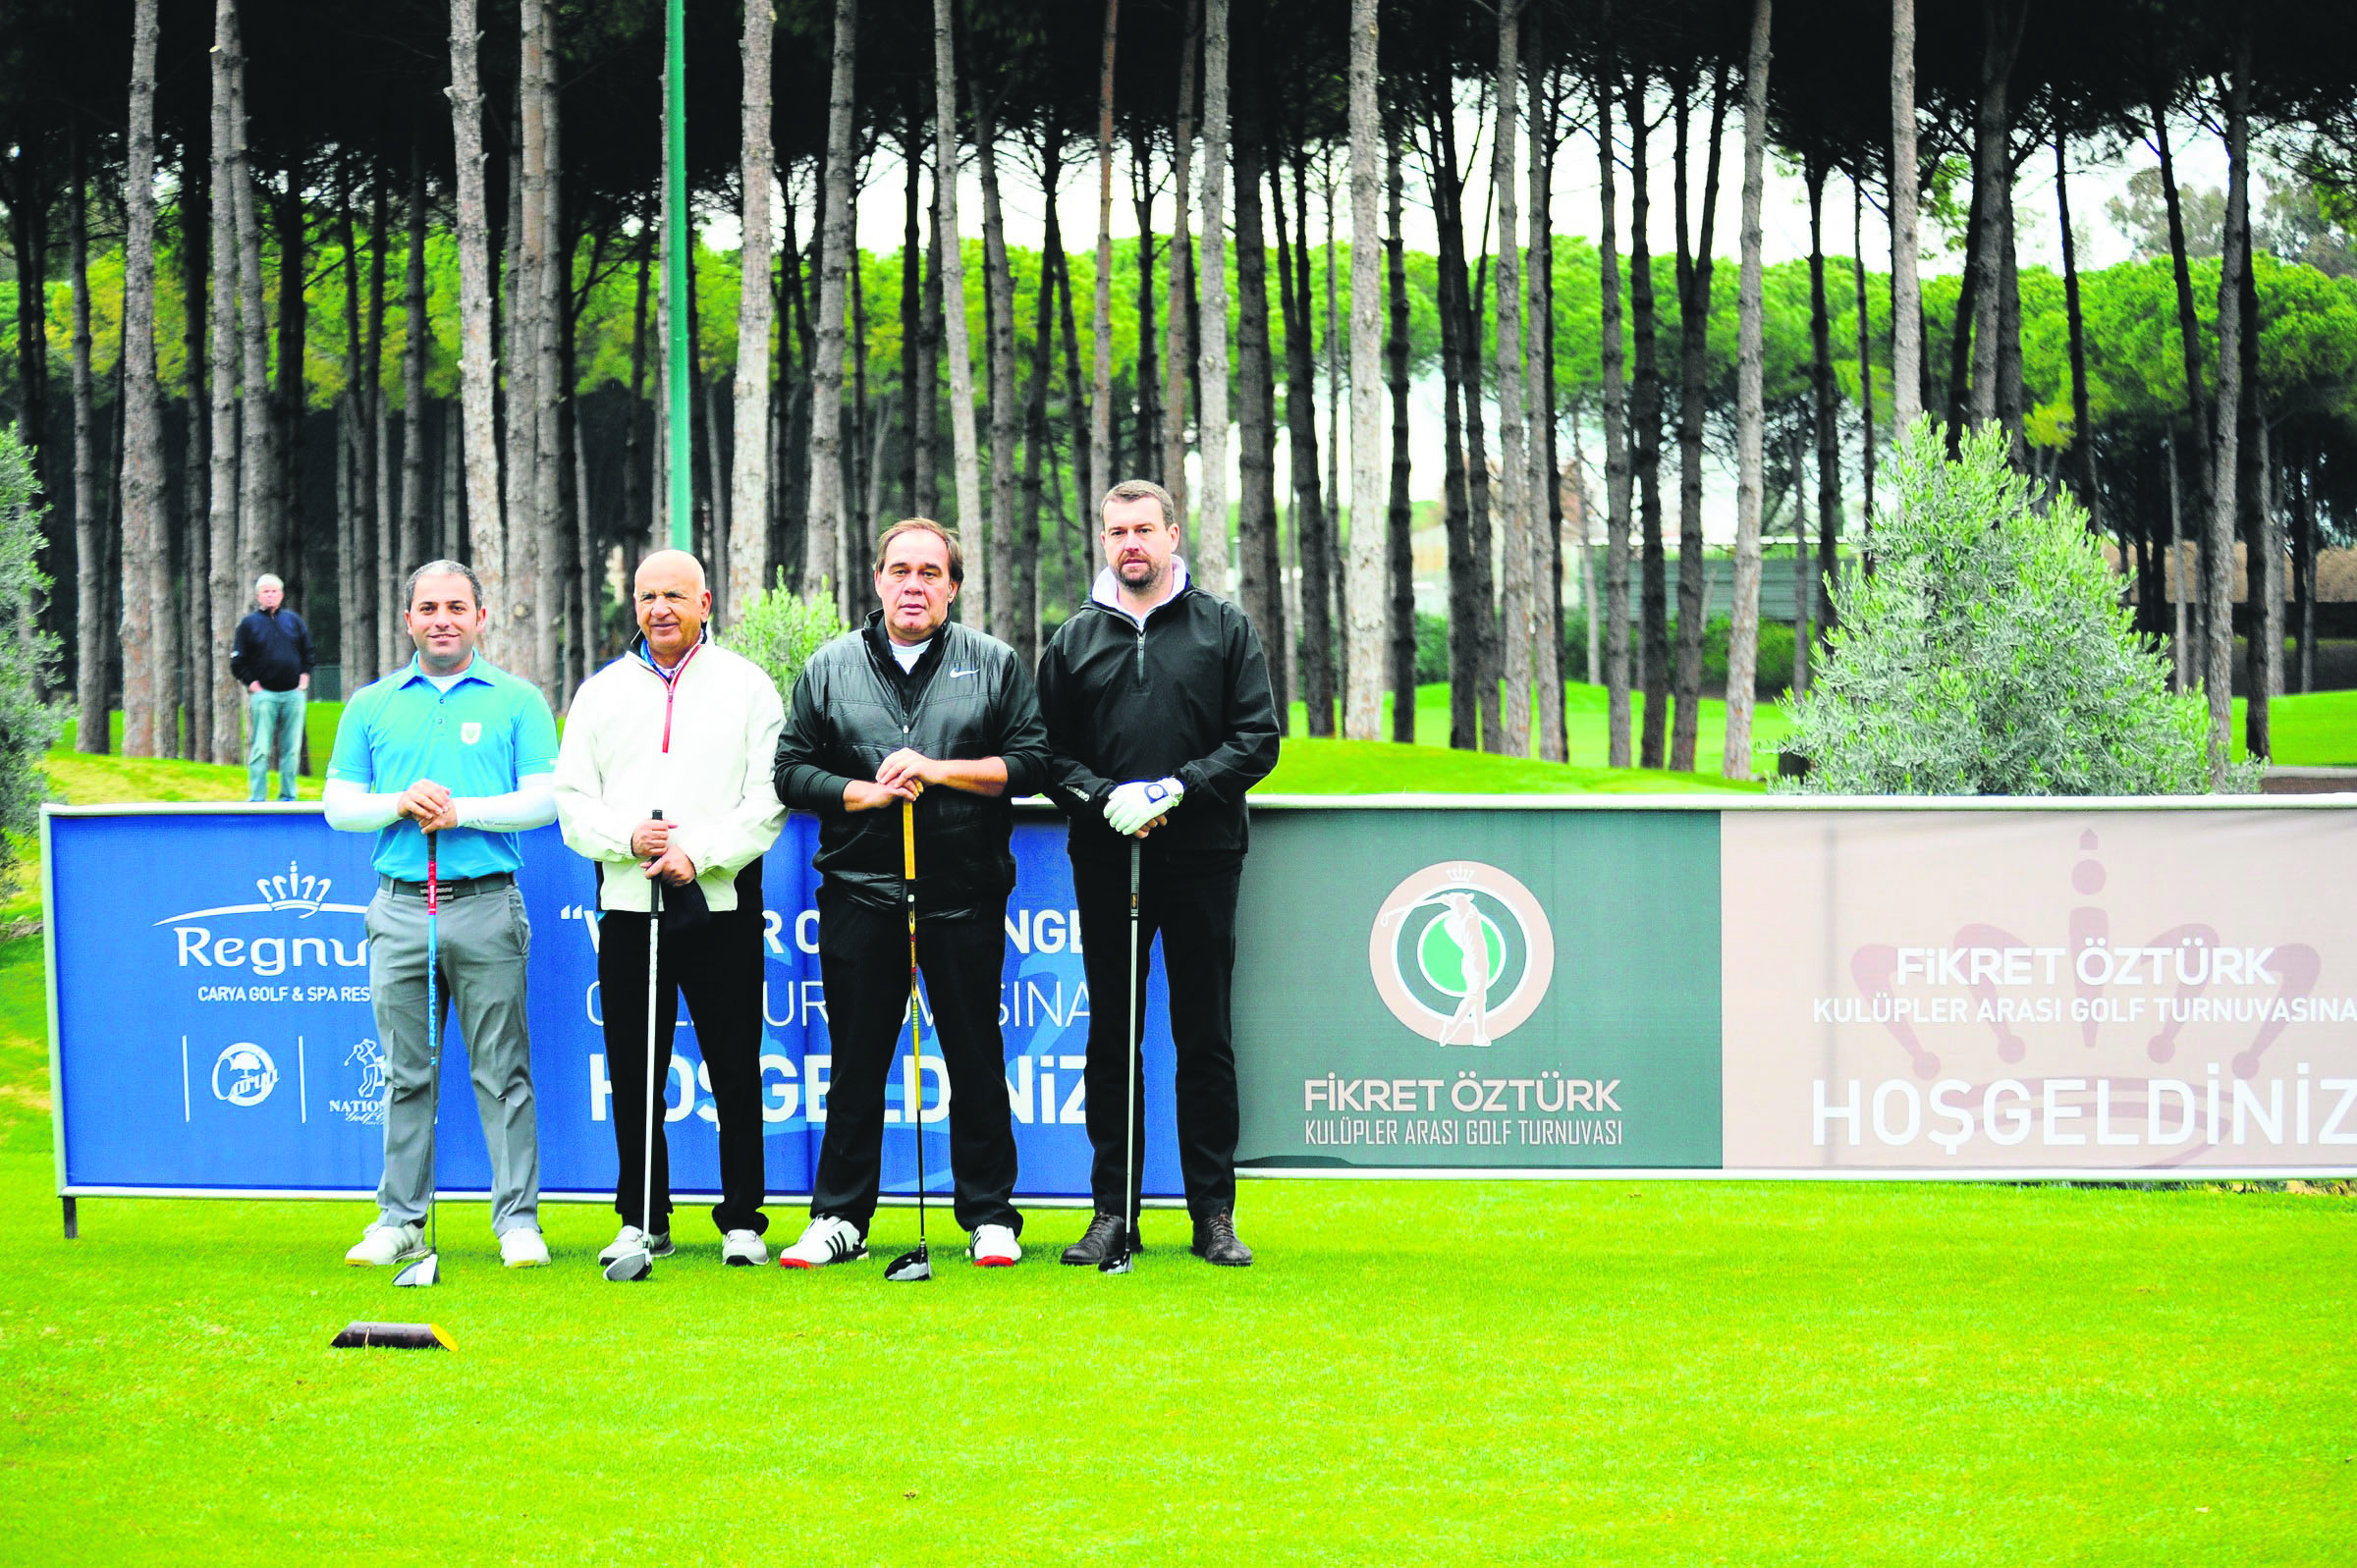 G20 host hotel presents tournament for Turkish golf clubs